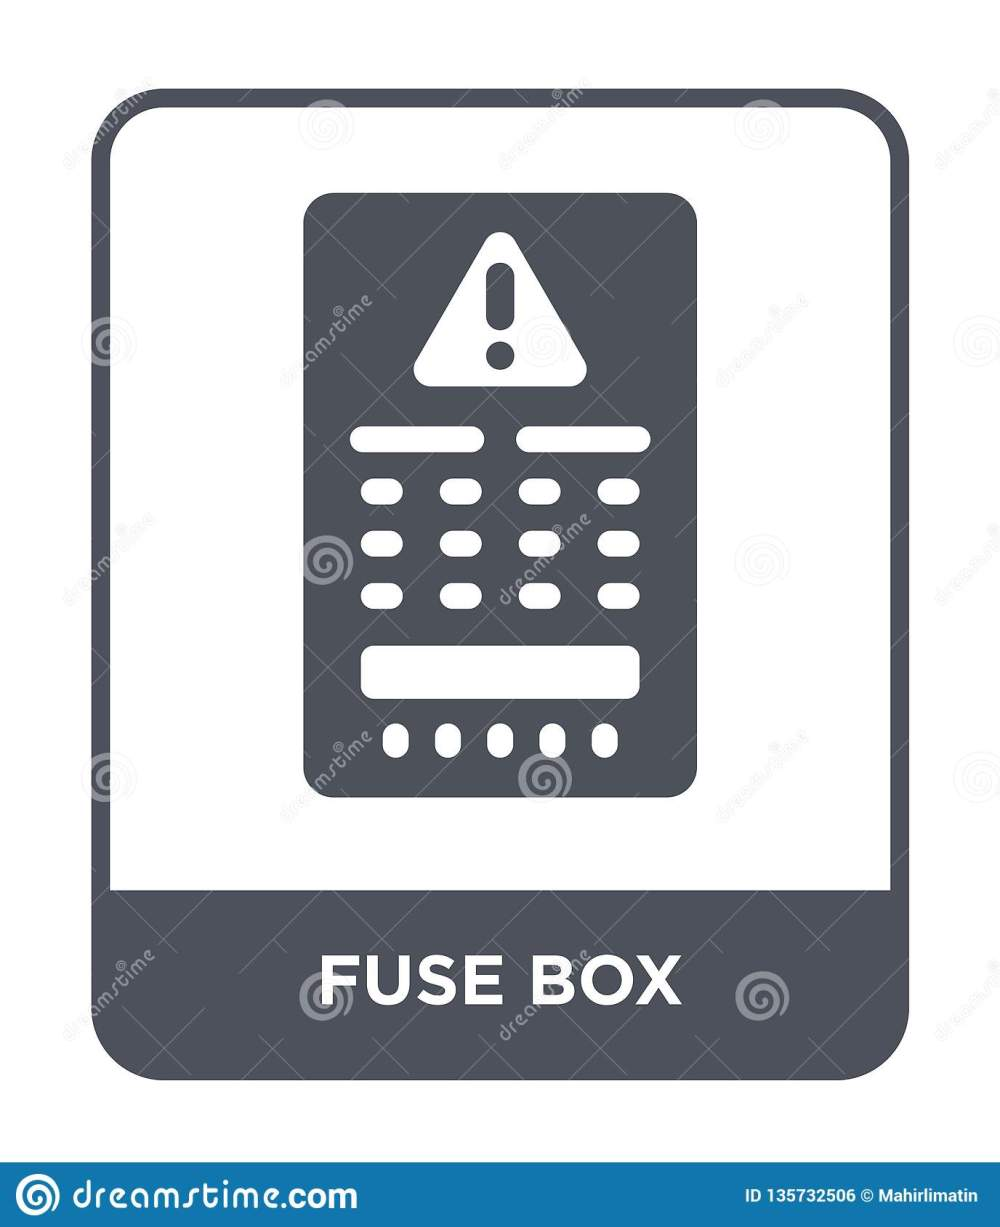 medium resolution of fuse box icon in trendy design style fuse box icon isolated on white background fuse box vector icon simple and modern flat symbol for web site mobile